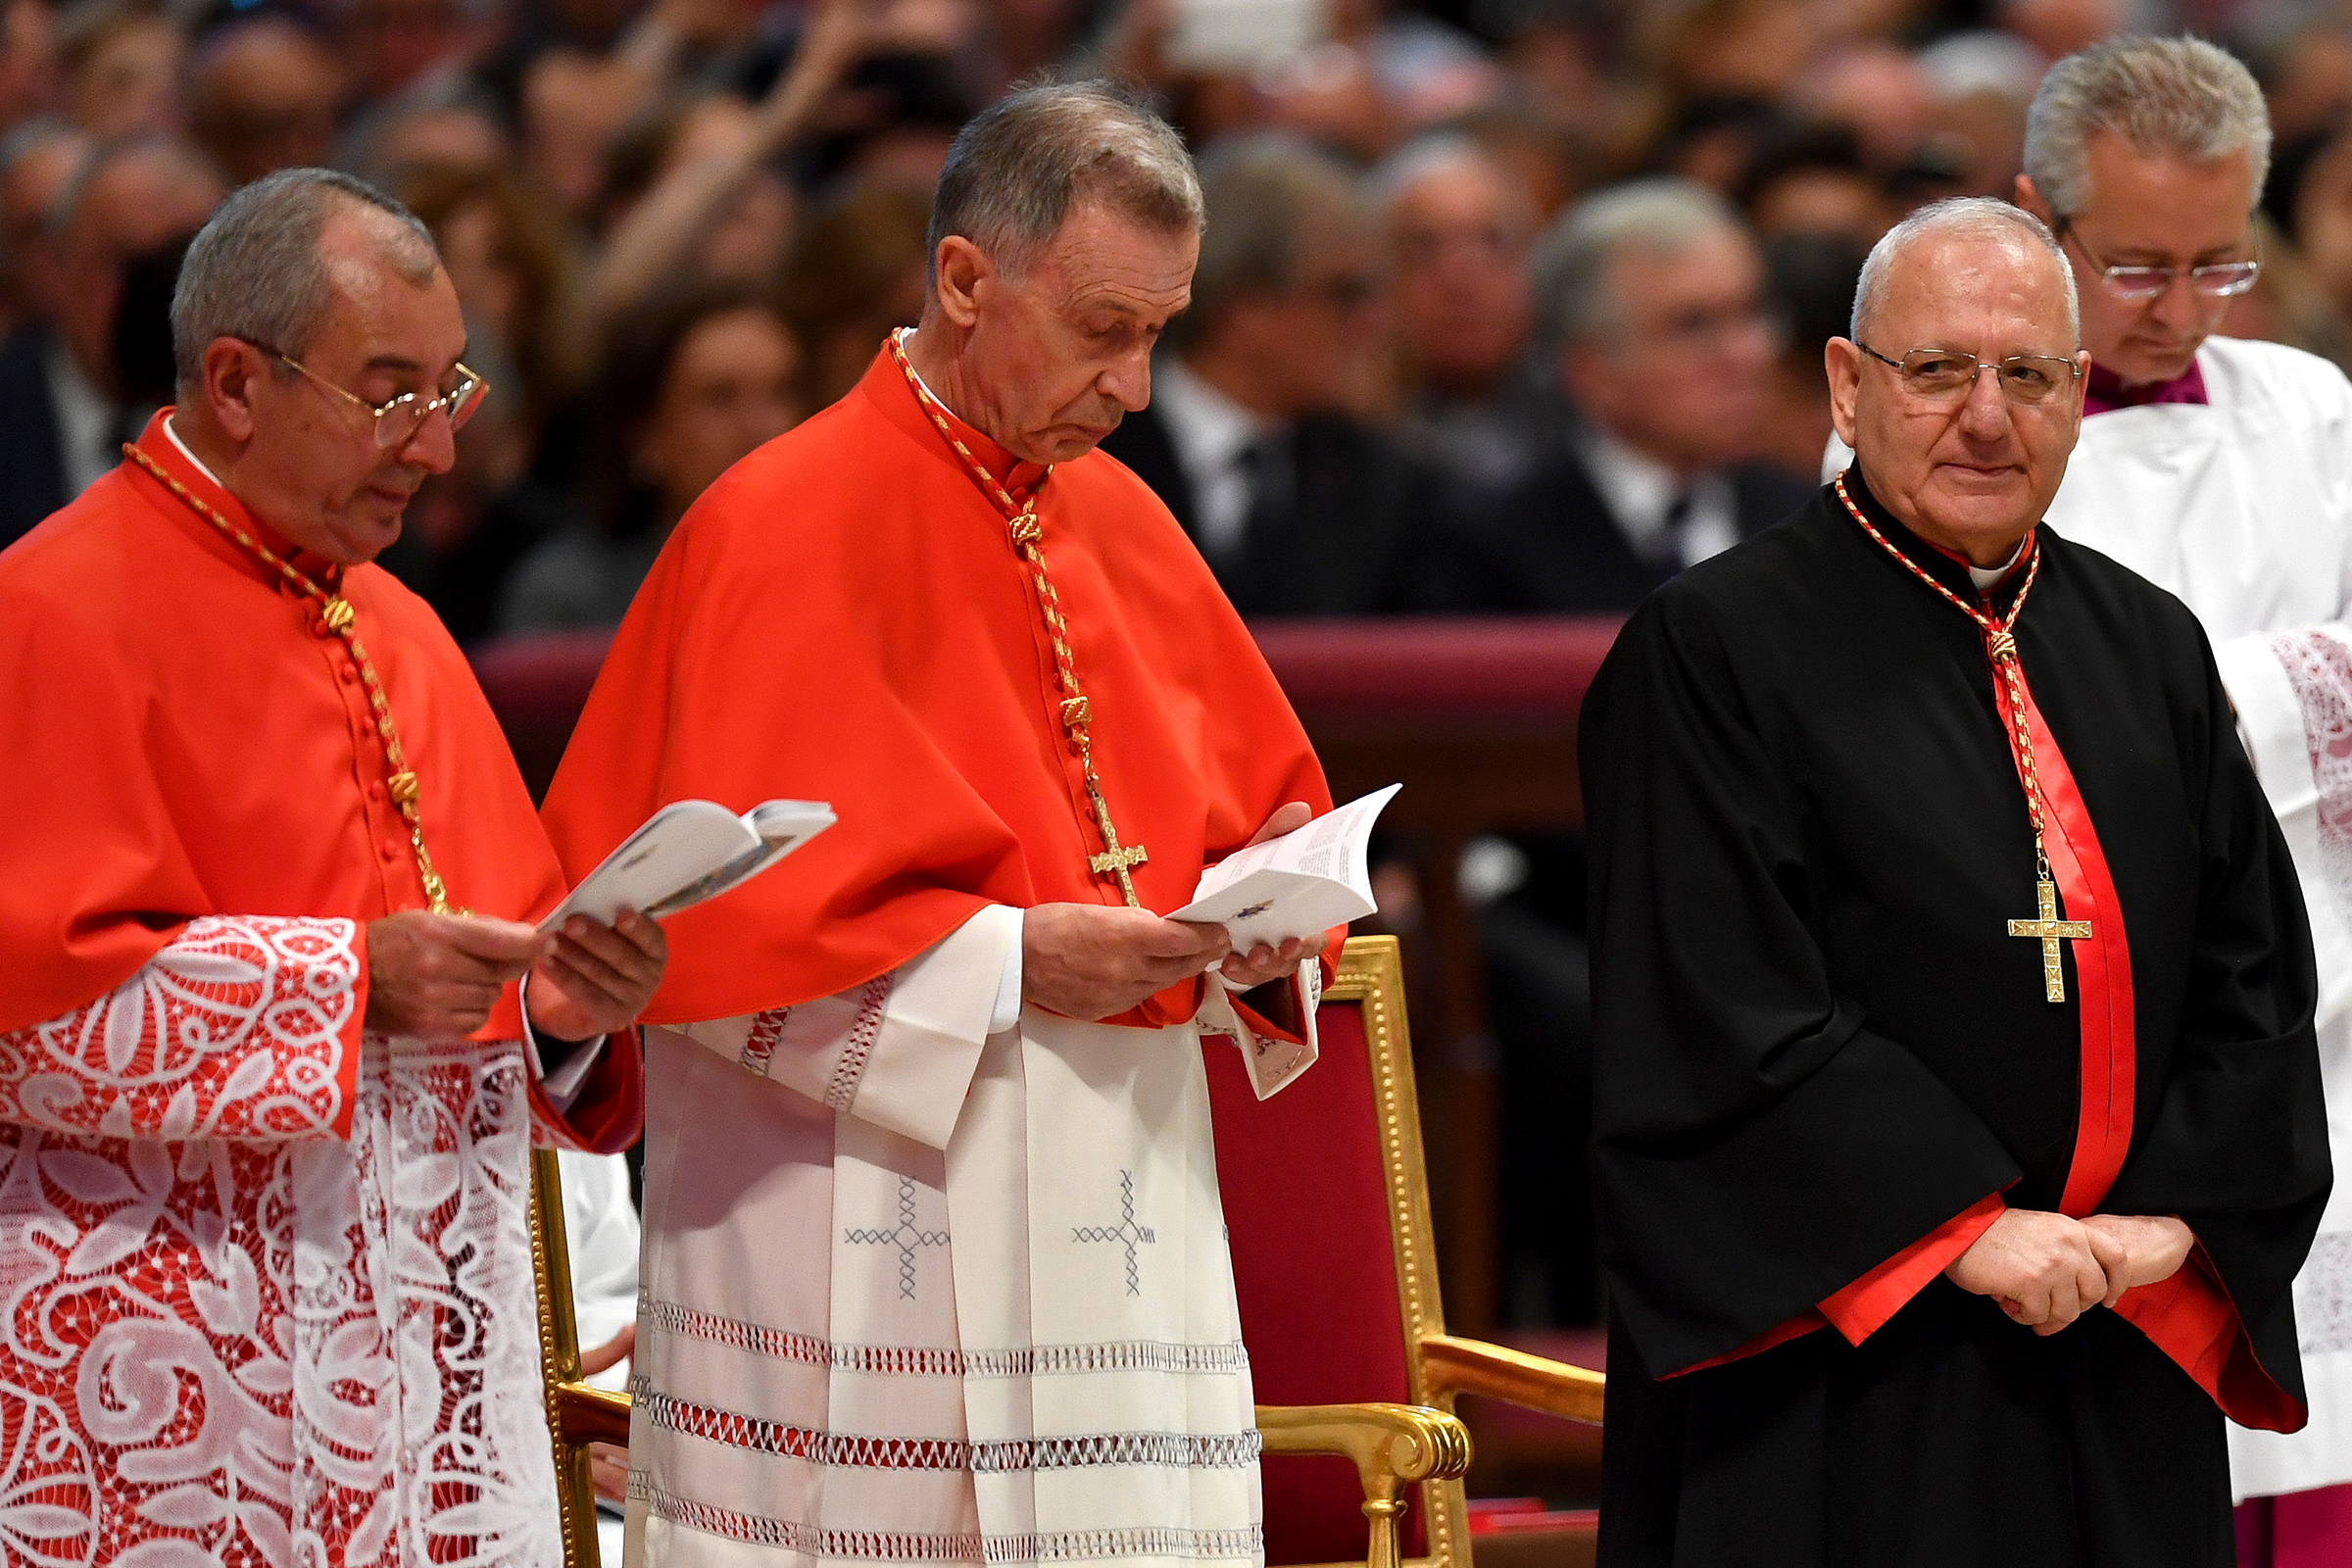 POPE FRANCIS,CONSISTORY